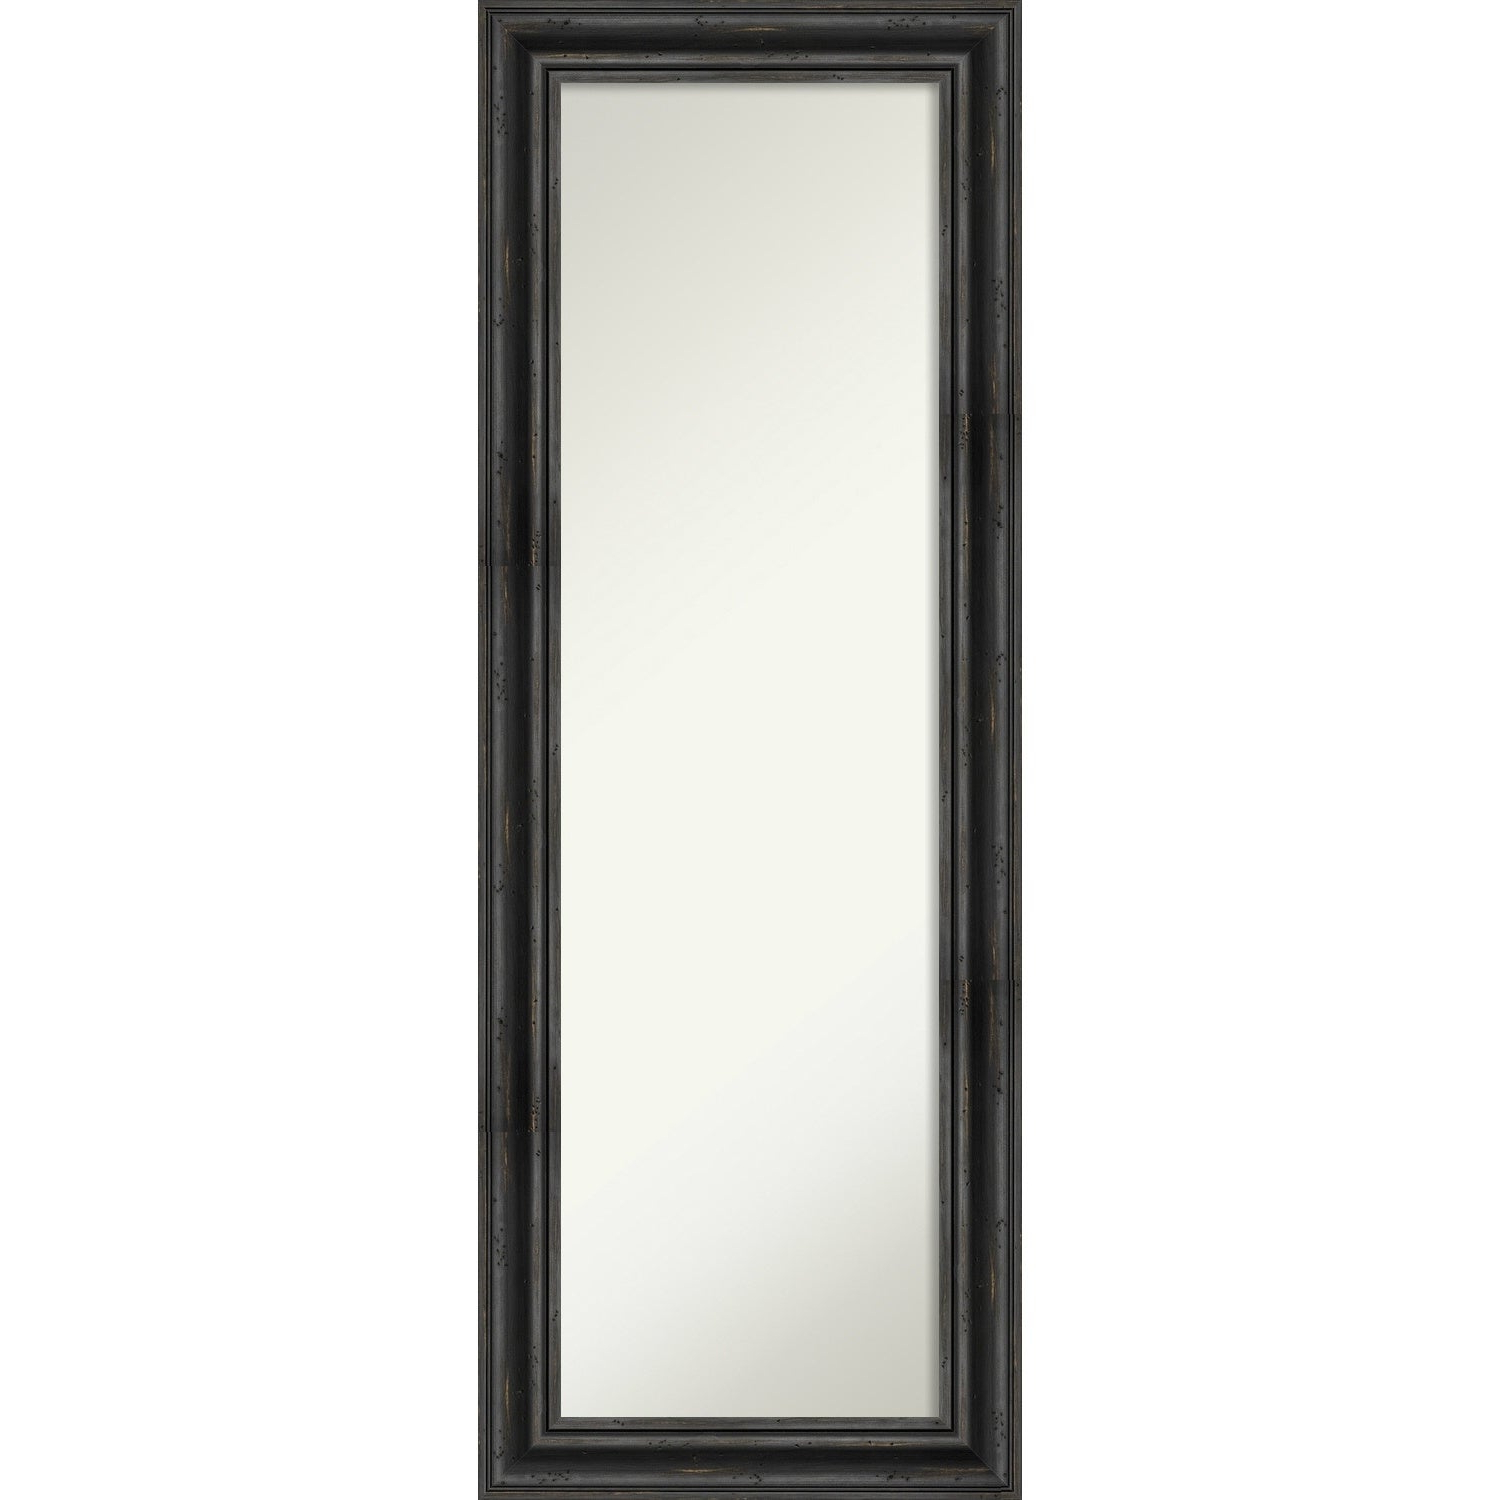 Favorite On The Door Full Length Wall Mirror, Rustic Pine Black: Outer Size 19 X 53 Inch Pertaining To Full Size Wall Mirrors (View 12 of 20)